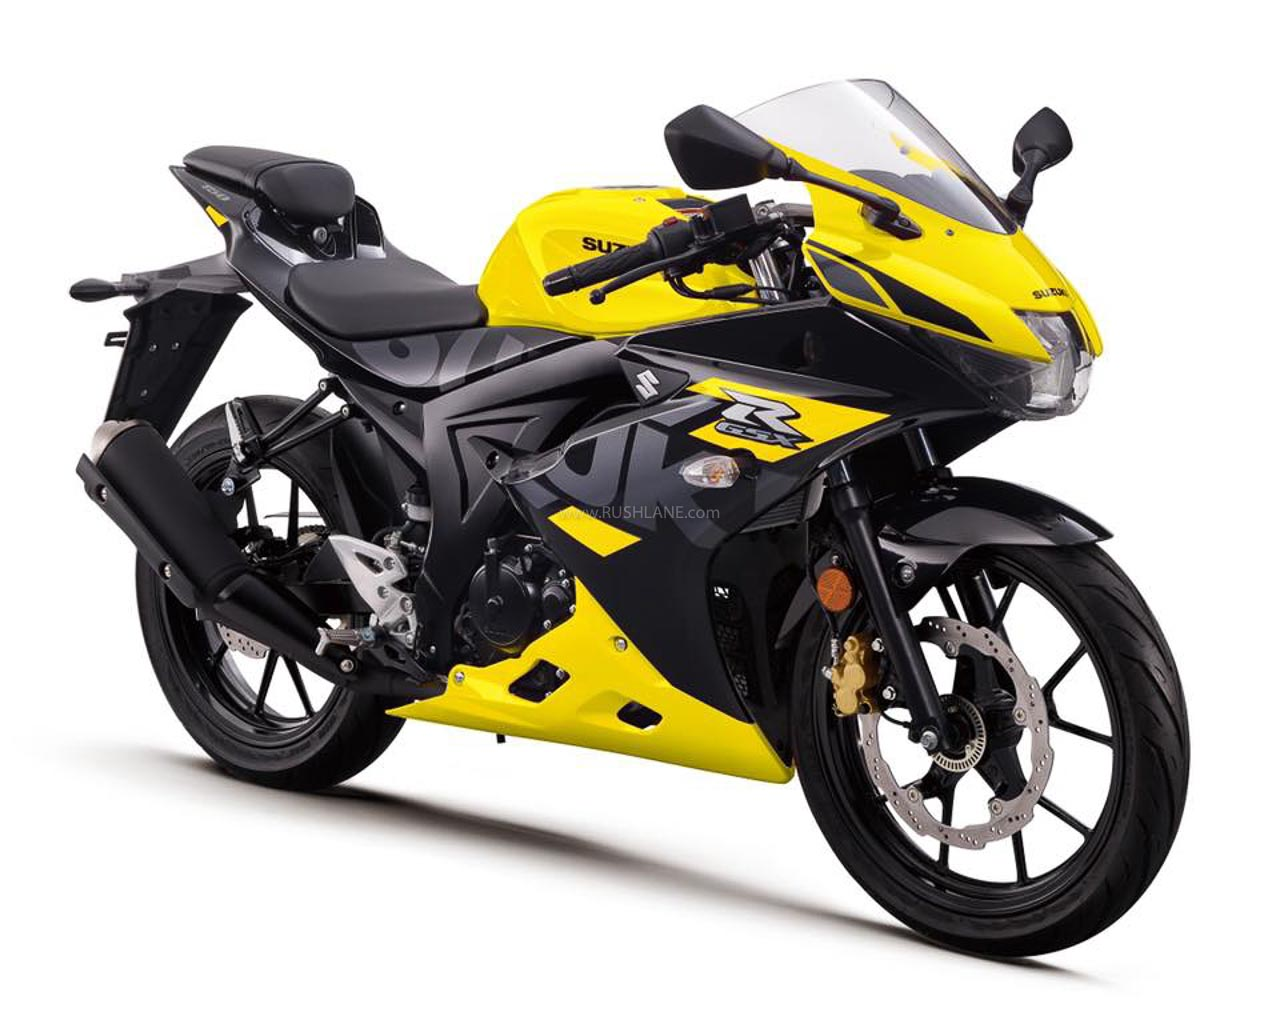 2020 Suzuki GSX-R150 unveiled in Taiwan with new colours